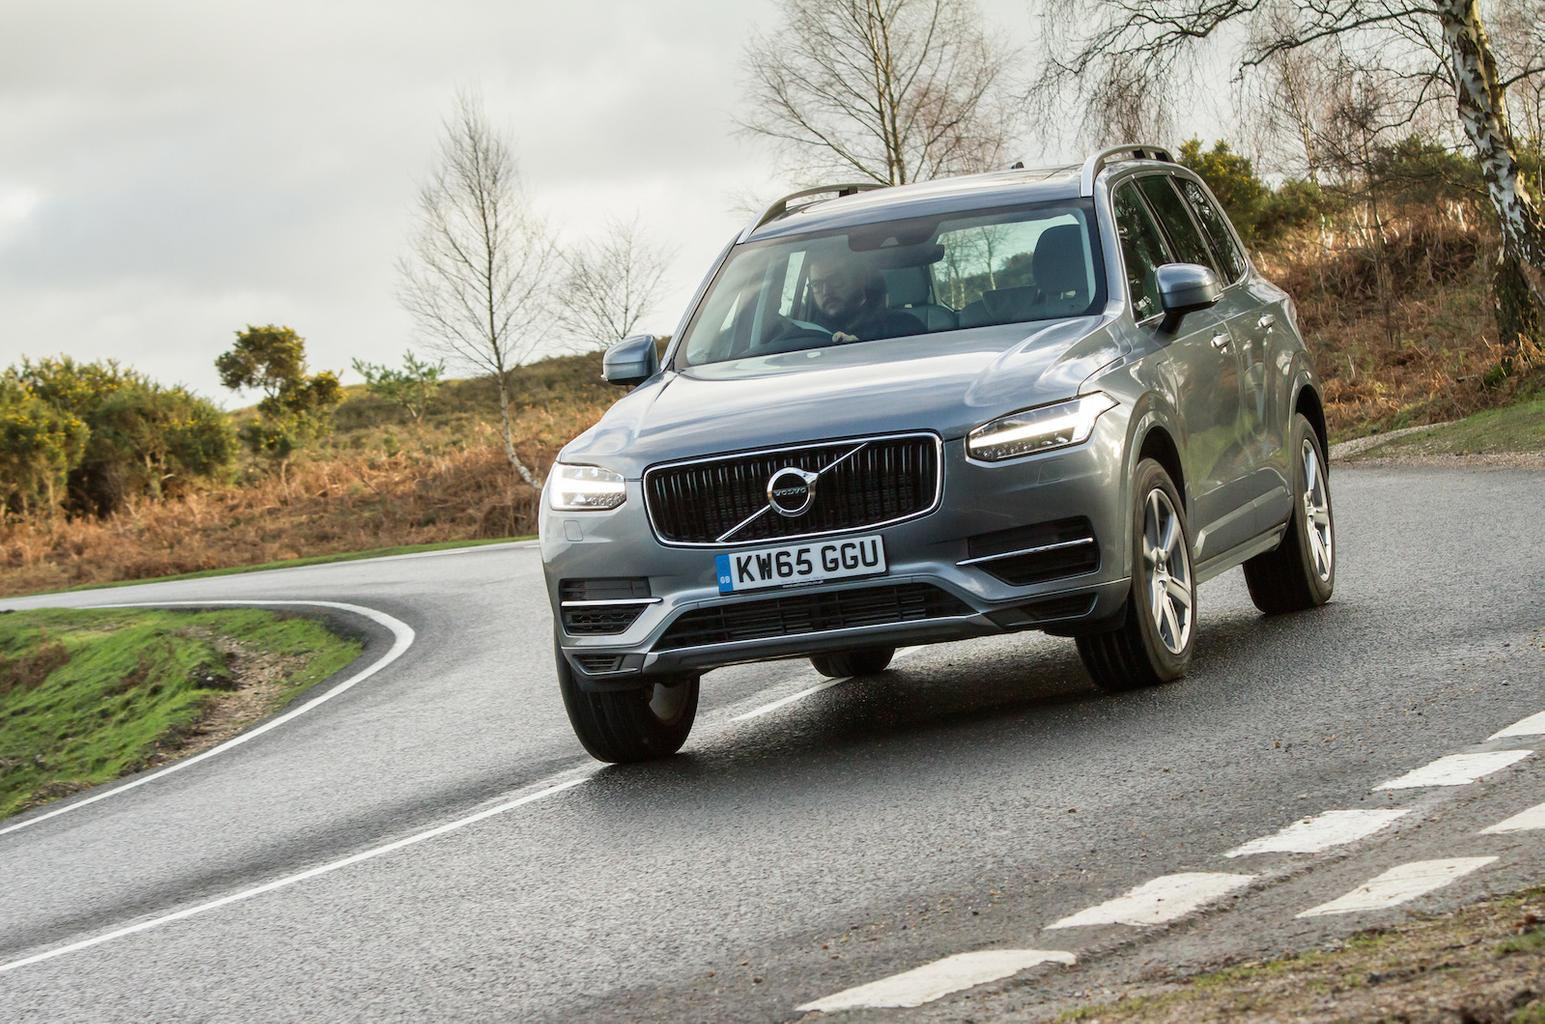 2016 Volvo XC90 T8 review